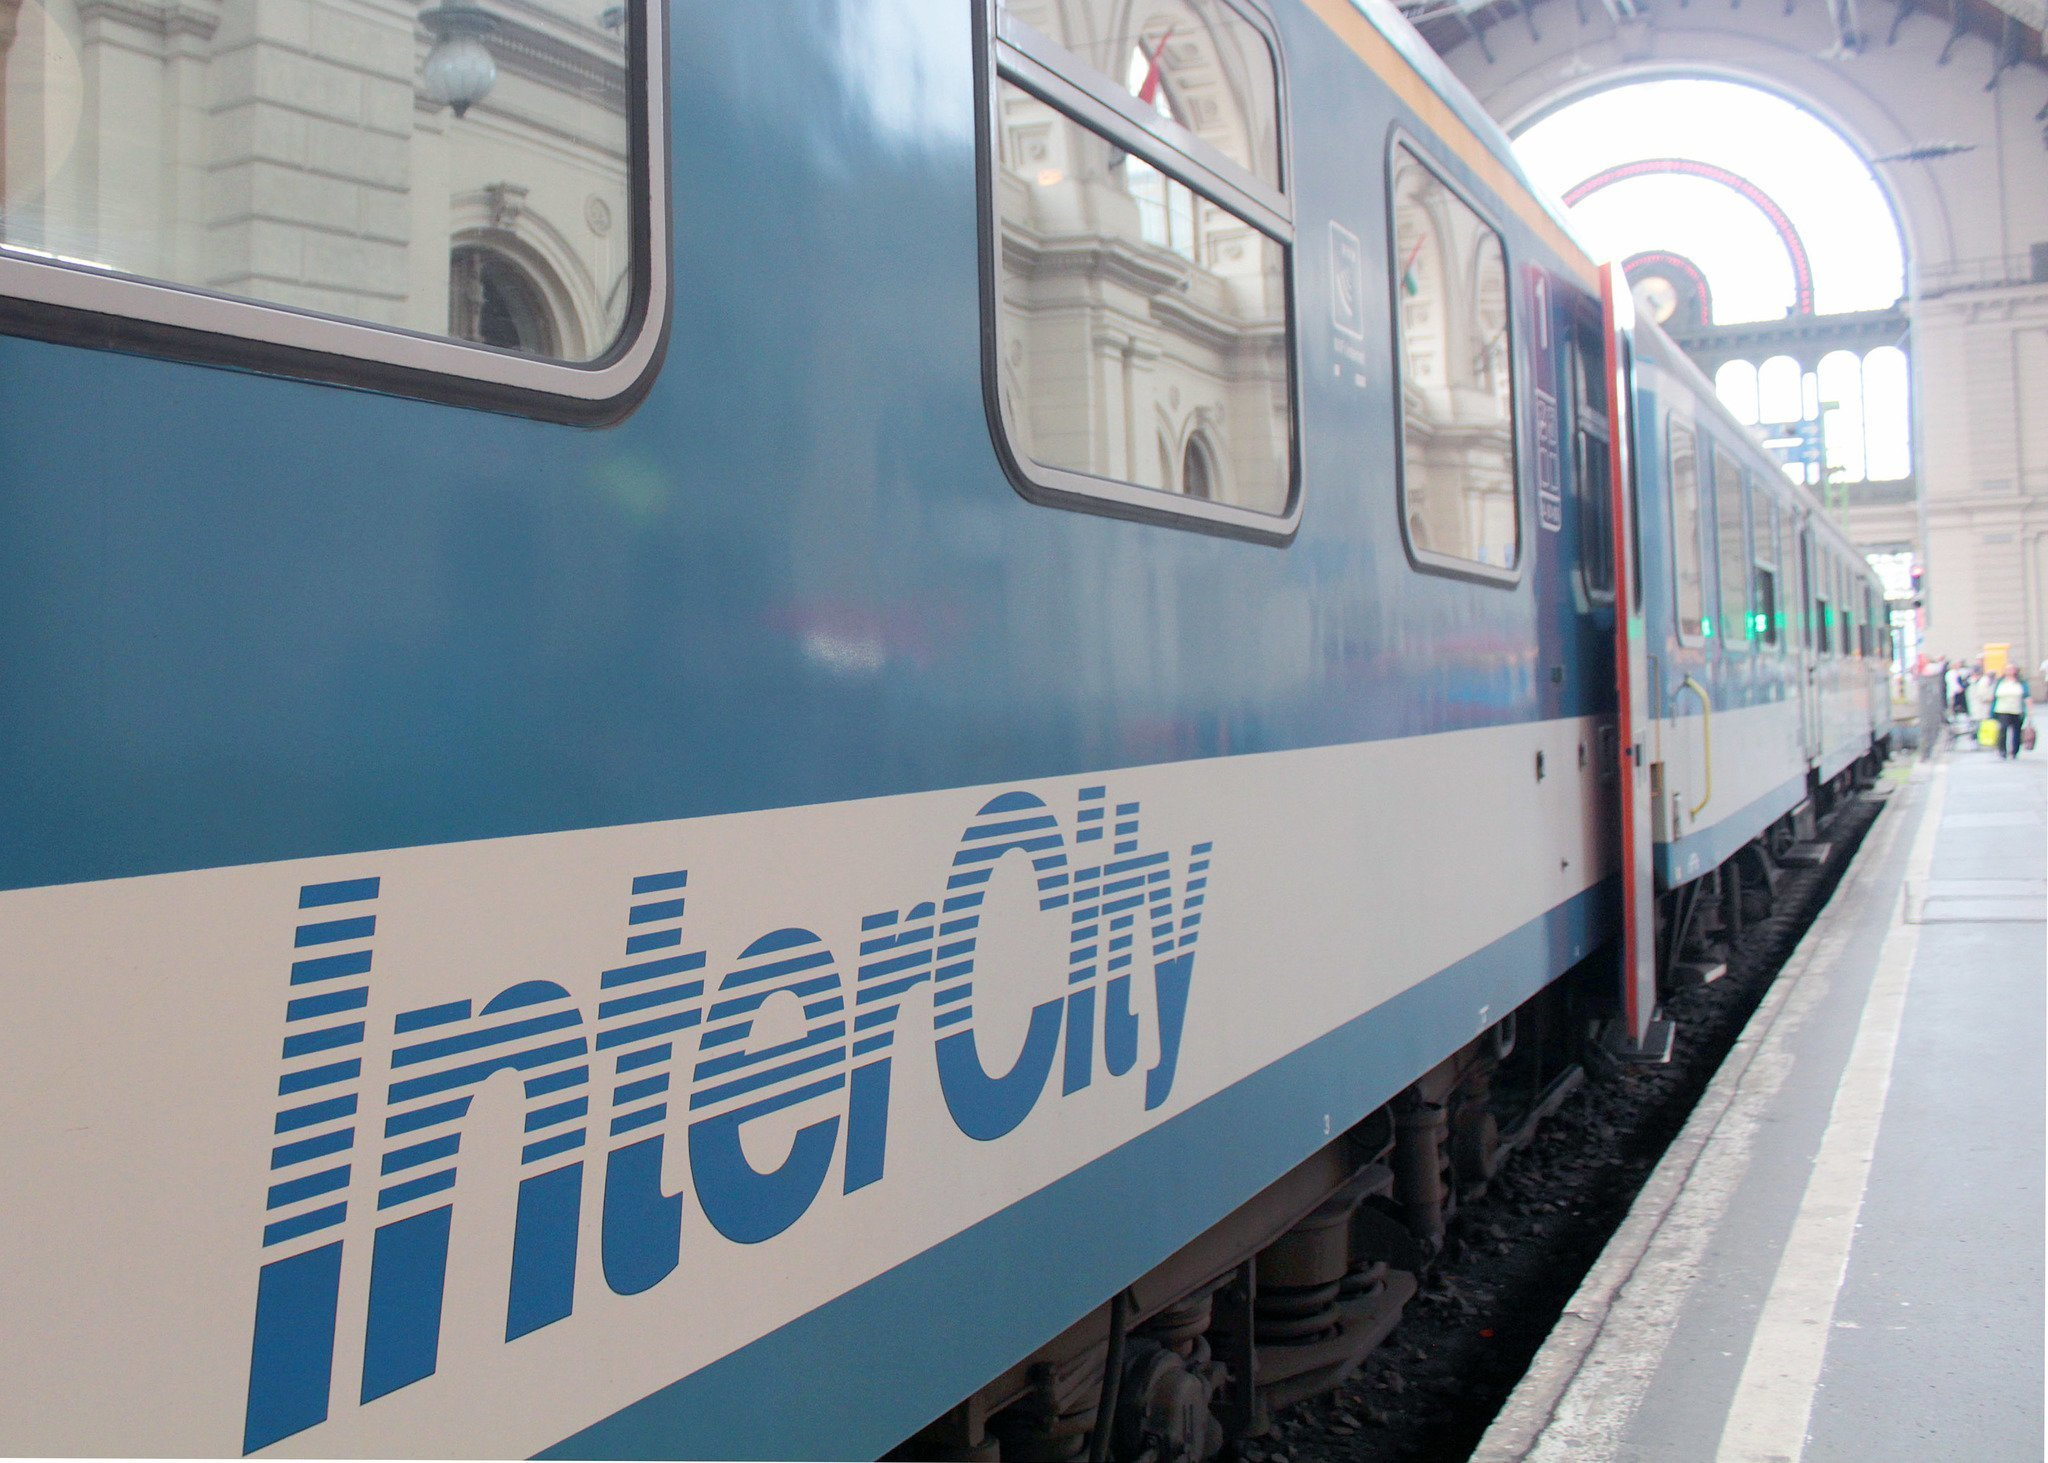 HUF 1,000 bn EU funding available for railway development by 2020